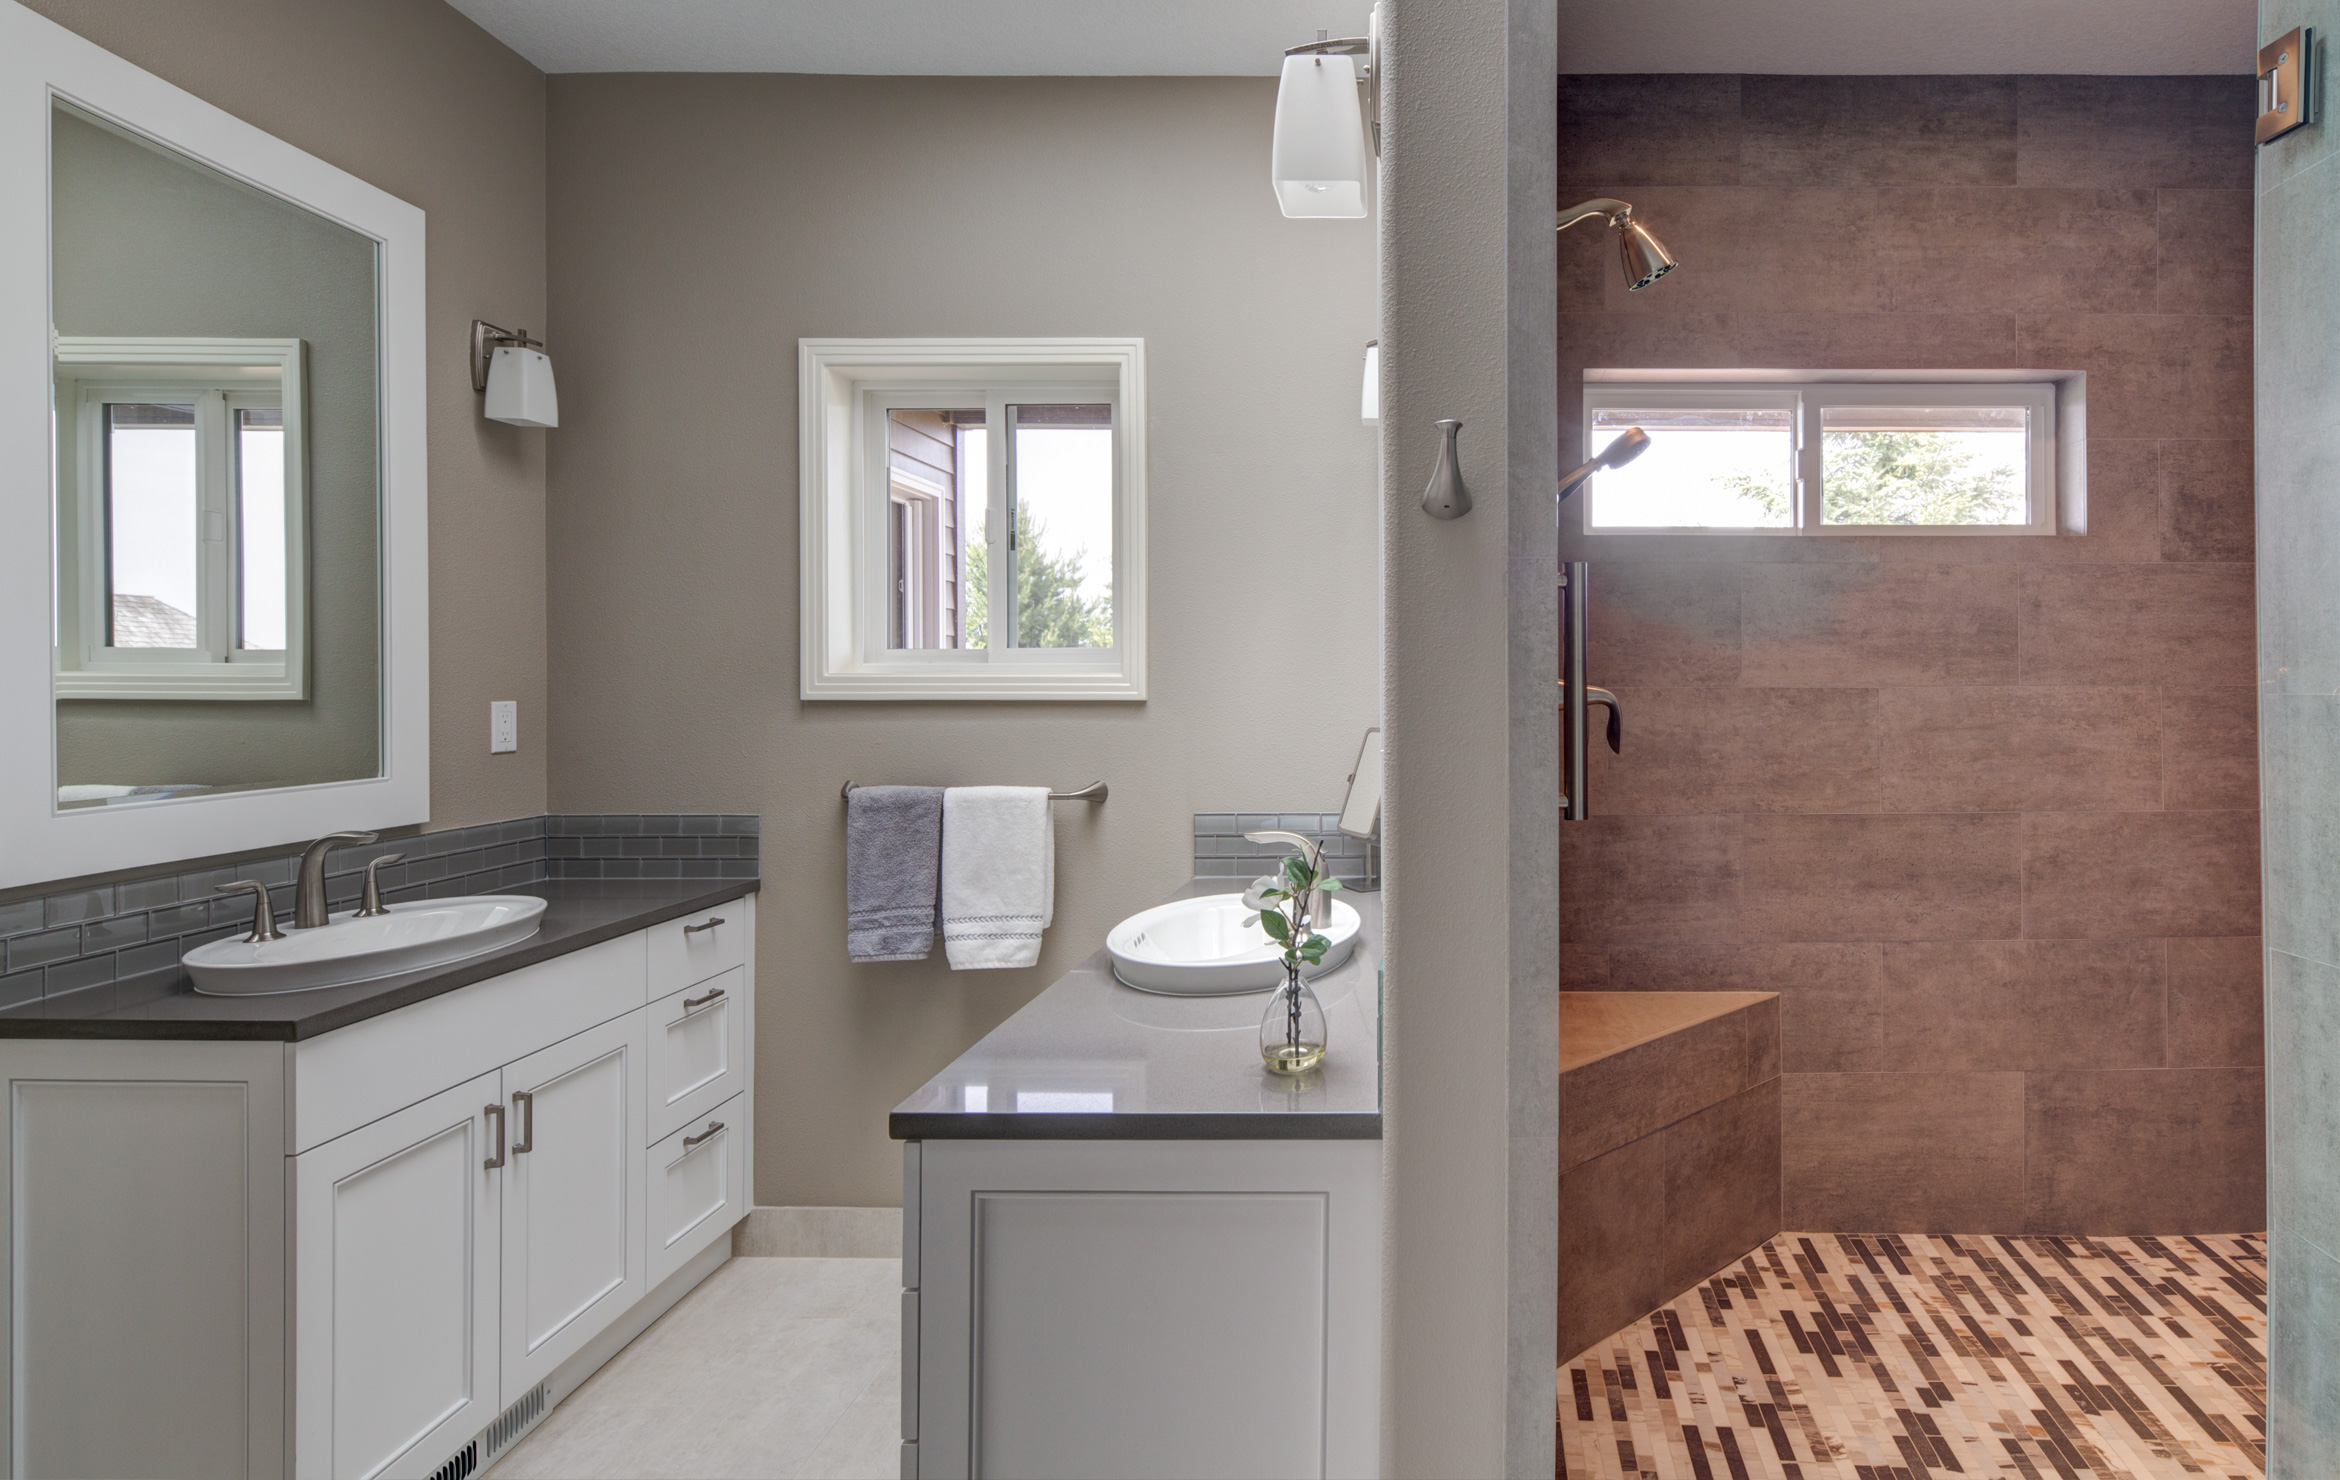 Bathroom Remodel Completes Home Transformation in Tigard OR